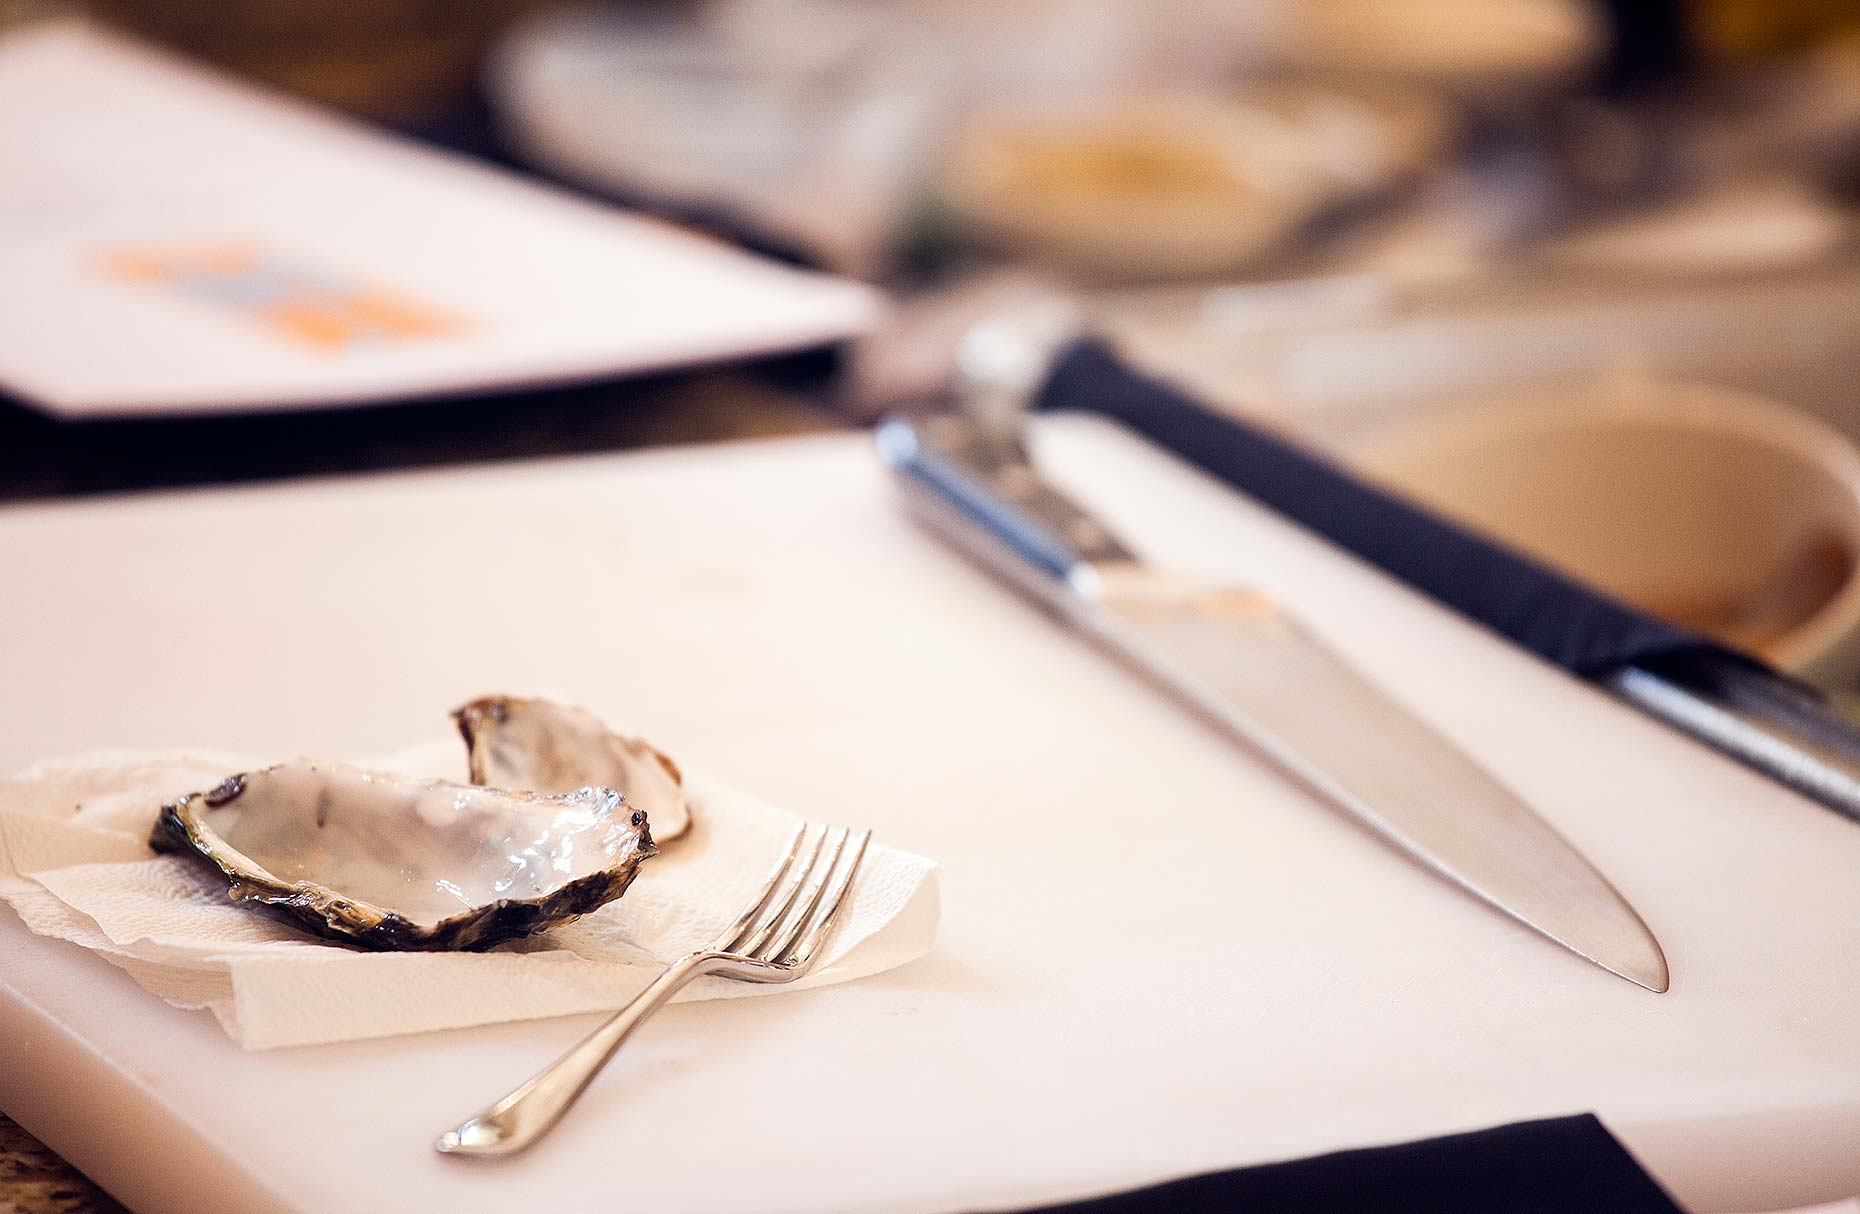 Jason Tinacci food photographer - Empty oyster shell